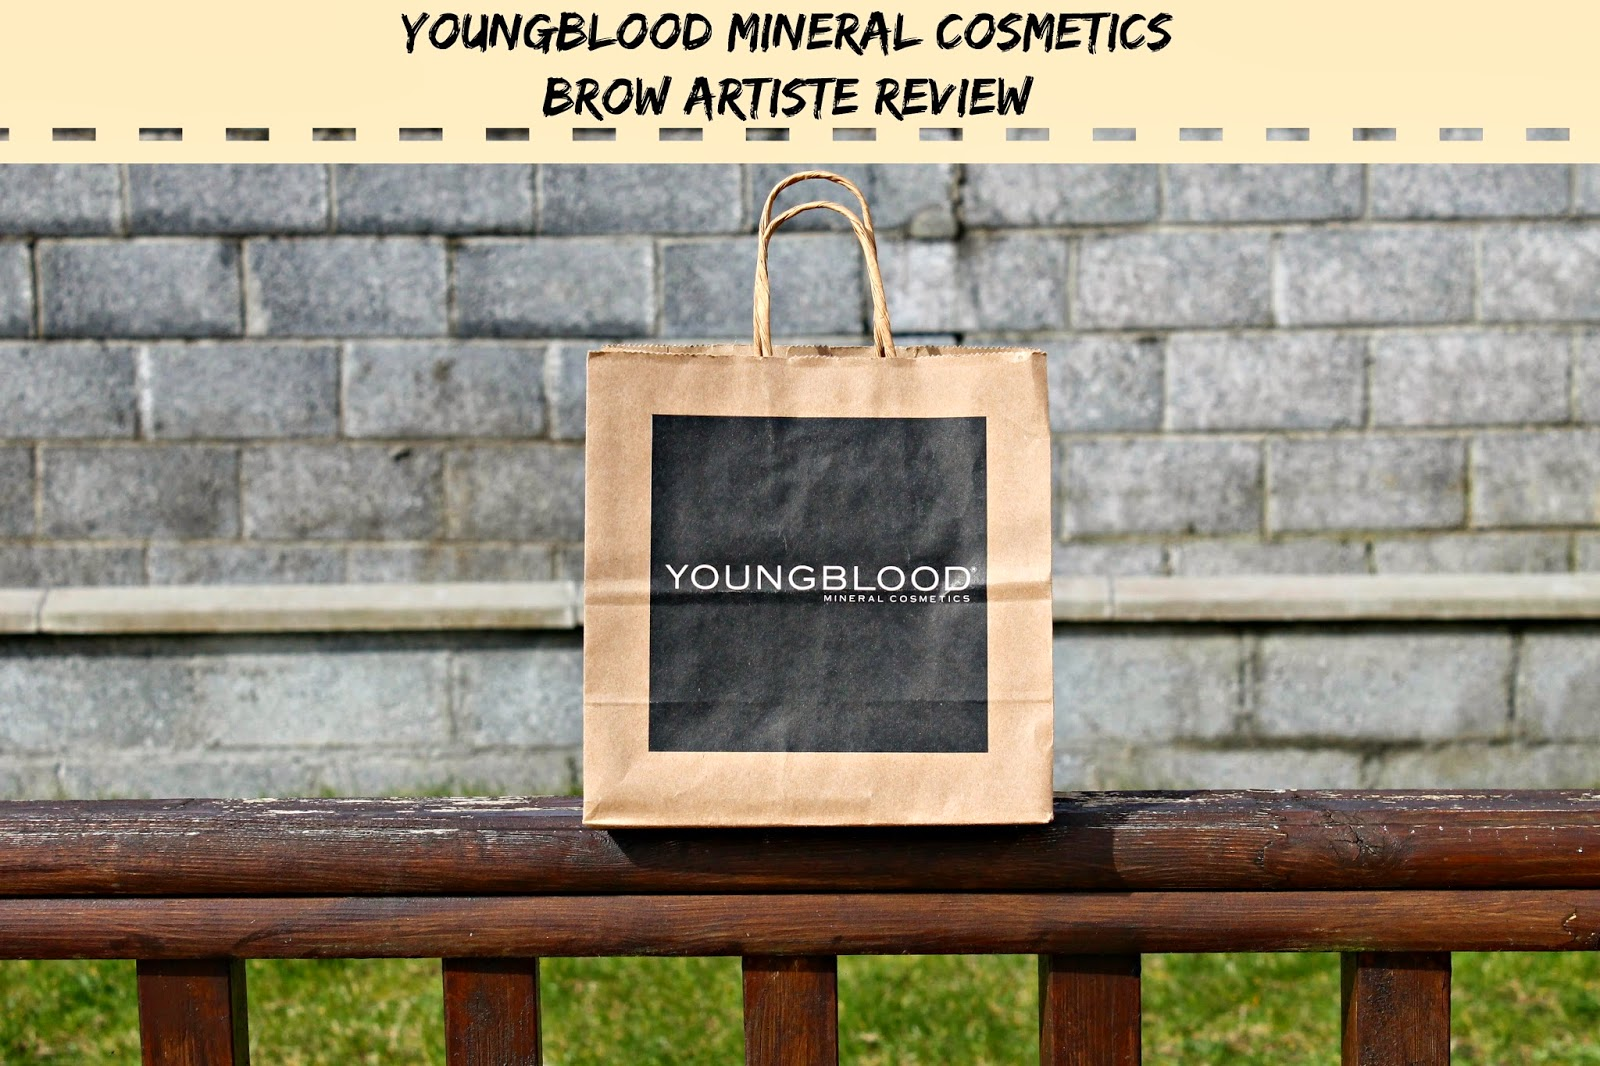 Youngblood Mineral Cosmetics Blog Review